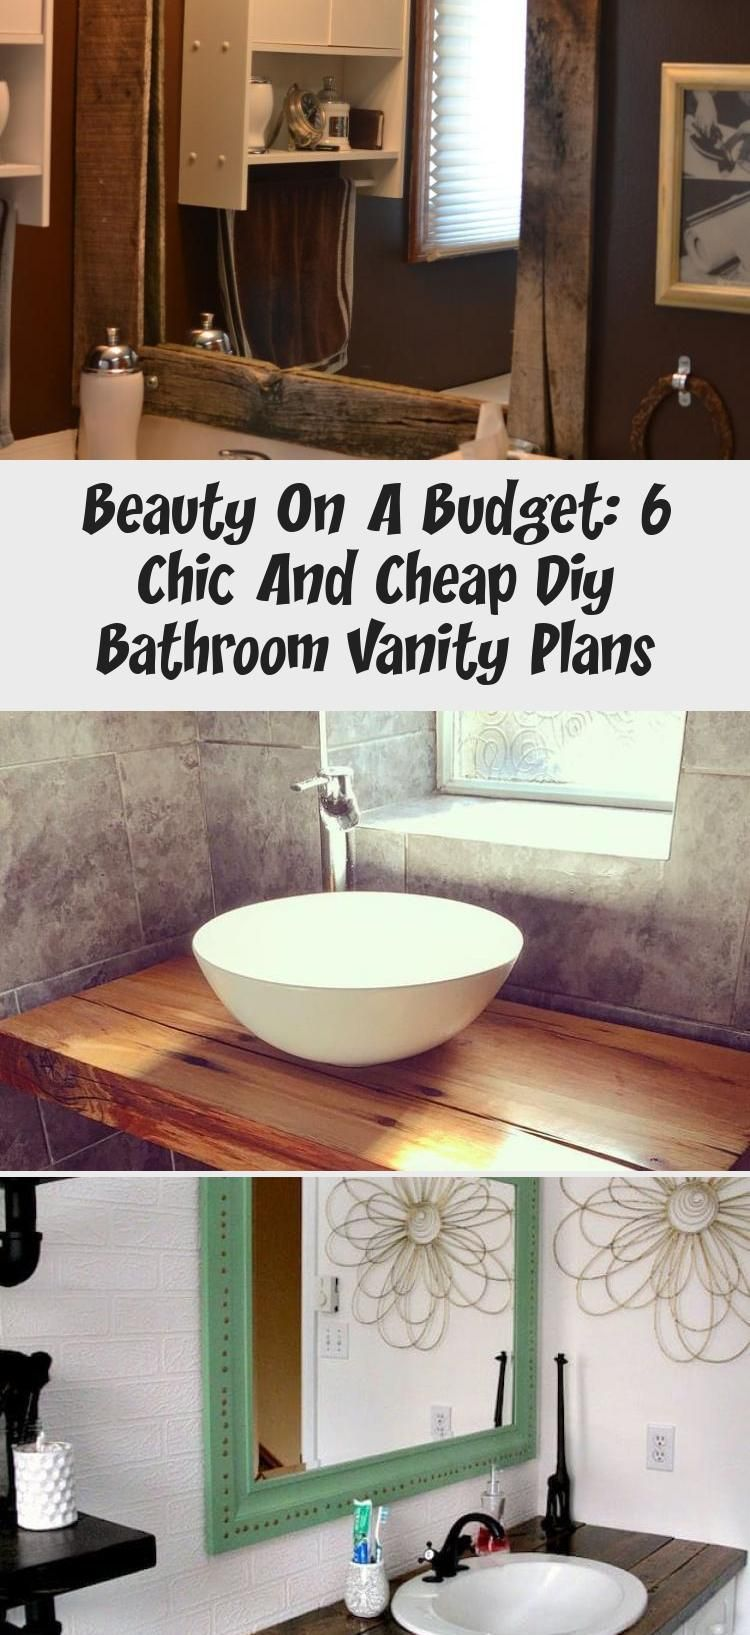 Beauty On A Budget 6 Chic And Cheap Diy Bathroom Vanity Plans Bathroom Bathroom Beauty Diy Bathroom Vanity Diy Bathroom Diy Bathroom Vanity Plans [ 1635 x 750 Pixel ]